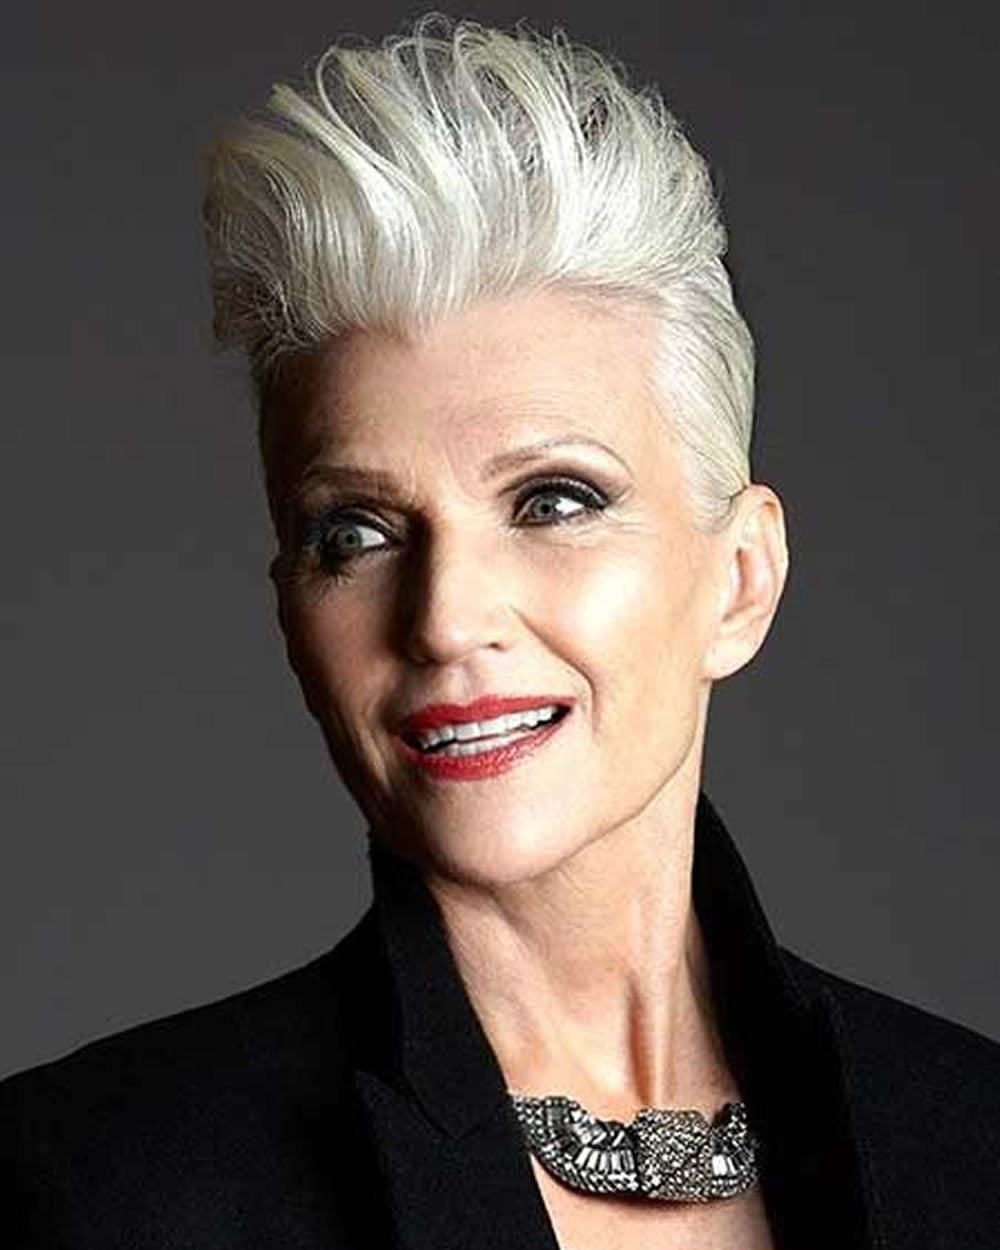 Haircuts For Women 60 Years Old: 25 Easy Short Pixie & Bob Haircuts For Older Women Over 50